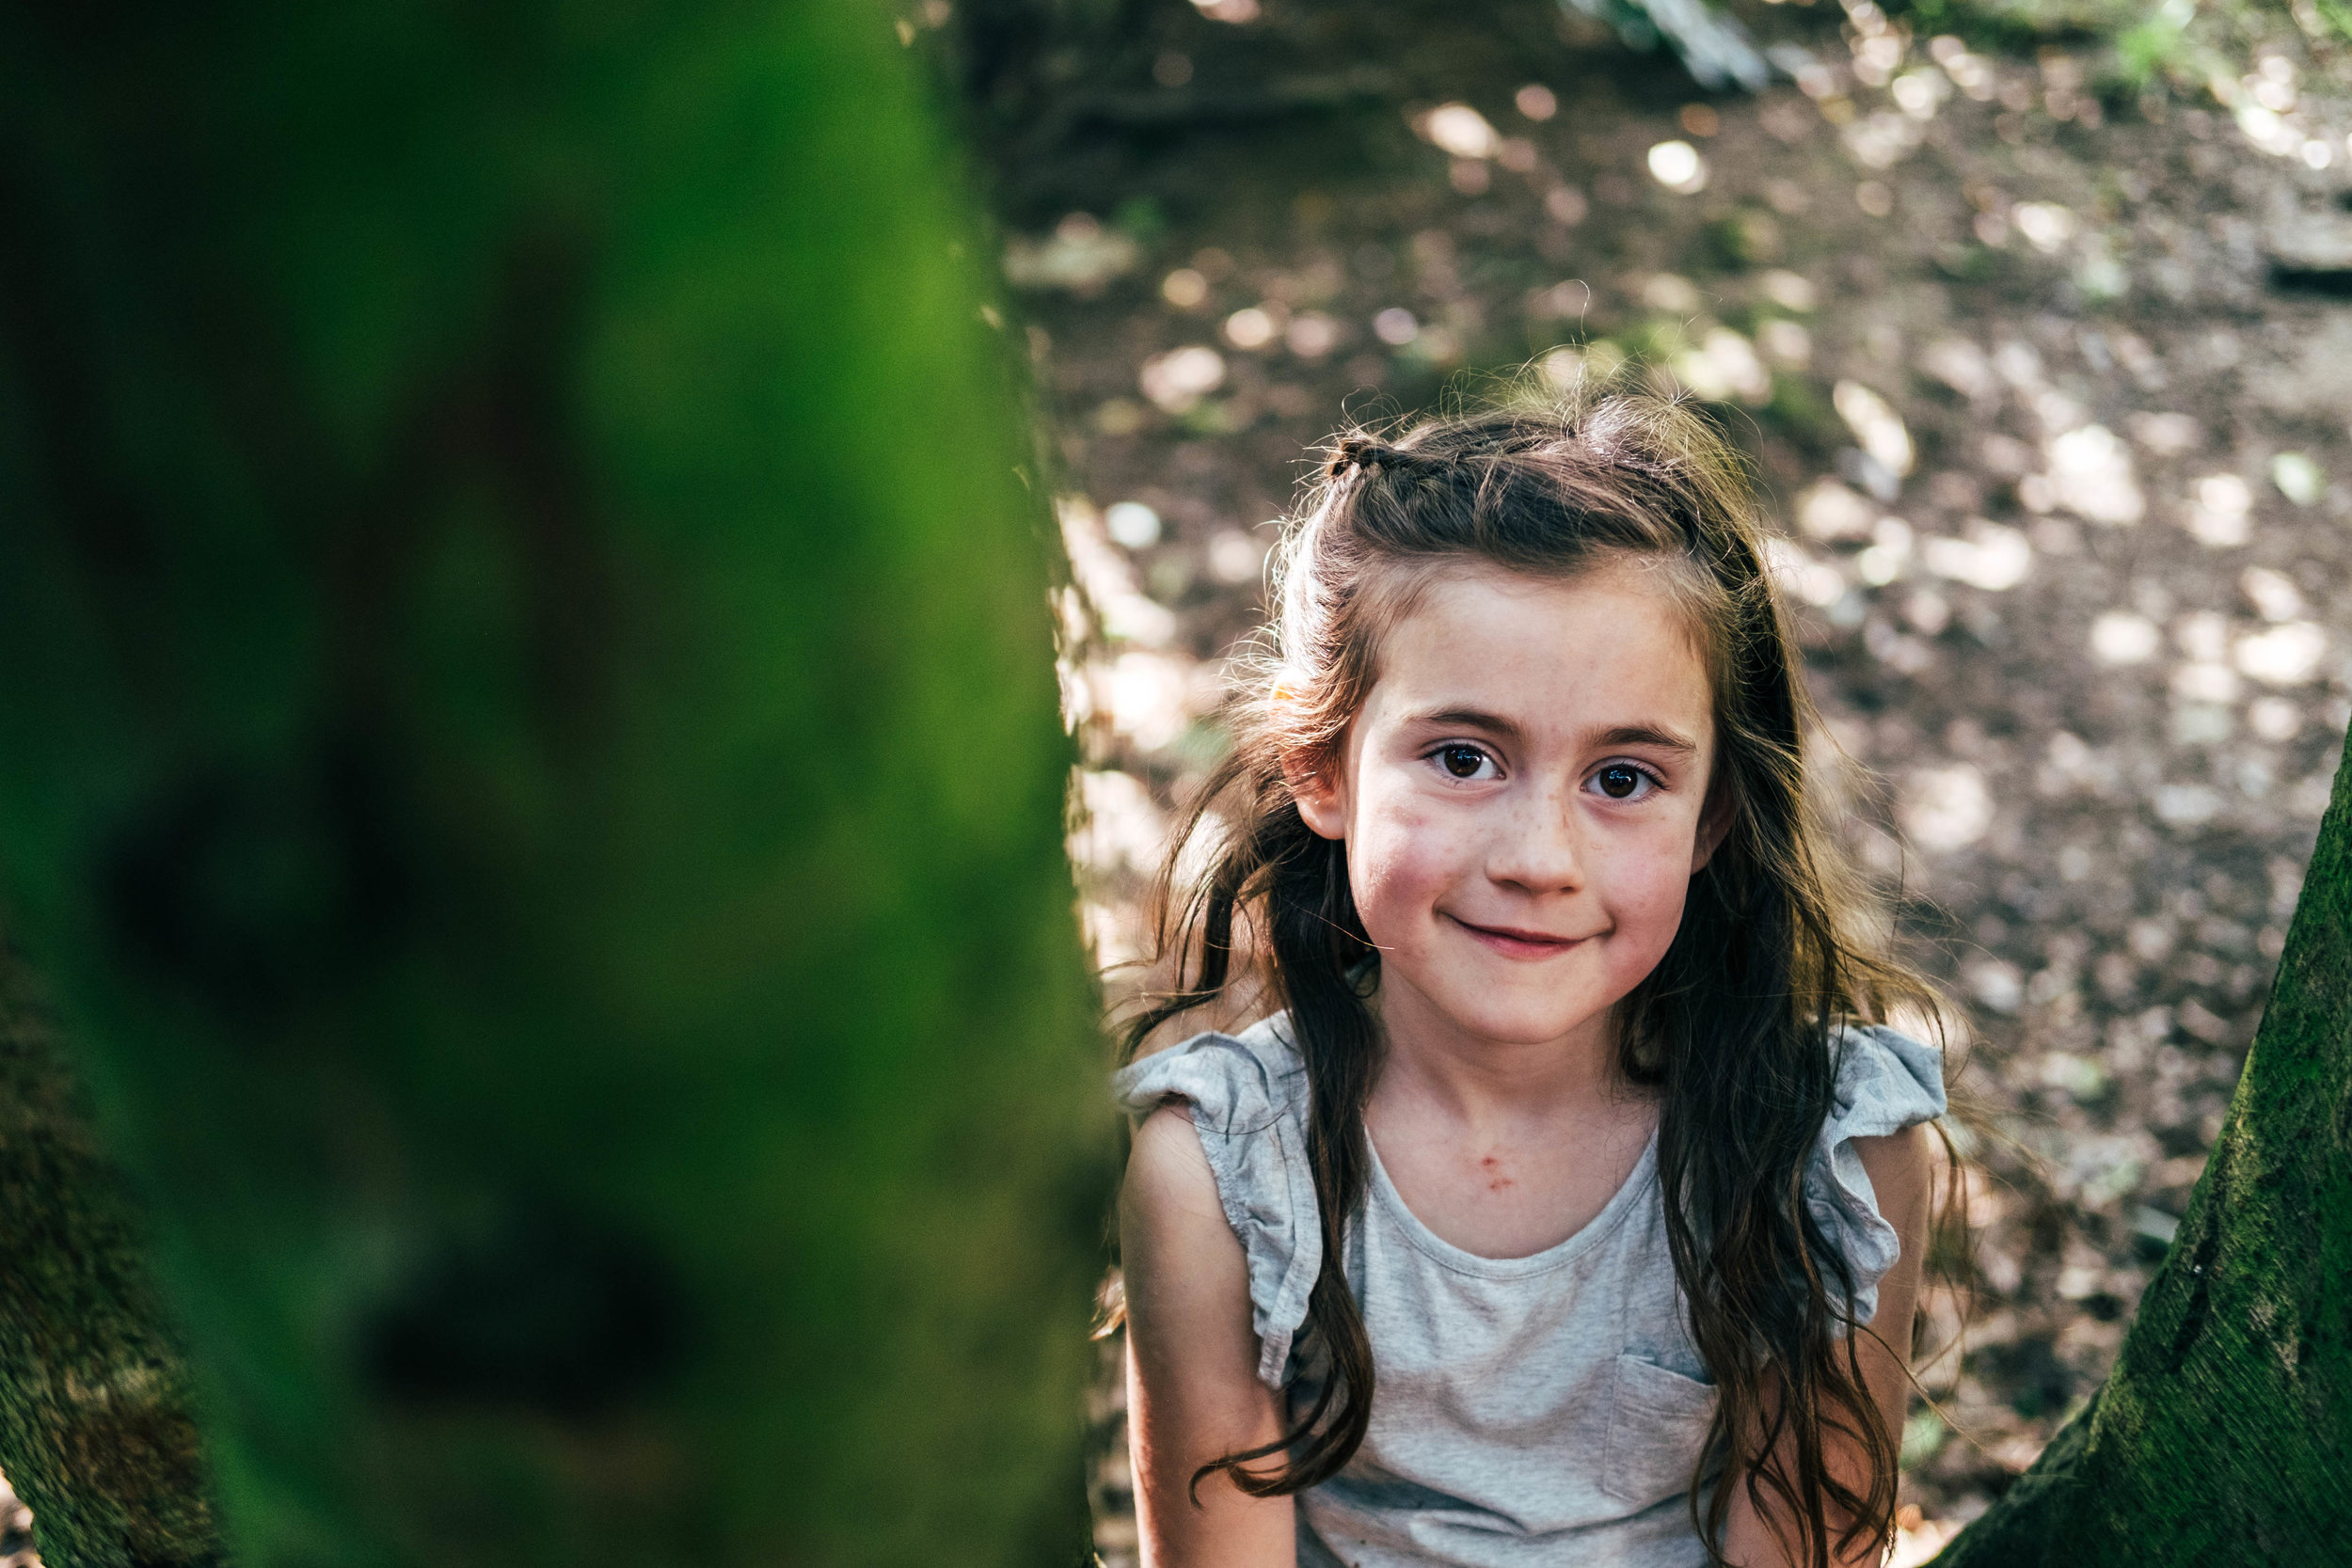 Little girl in tree in park in Spring Essex & London Documentary Family Photographer Lifestyle